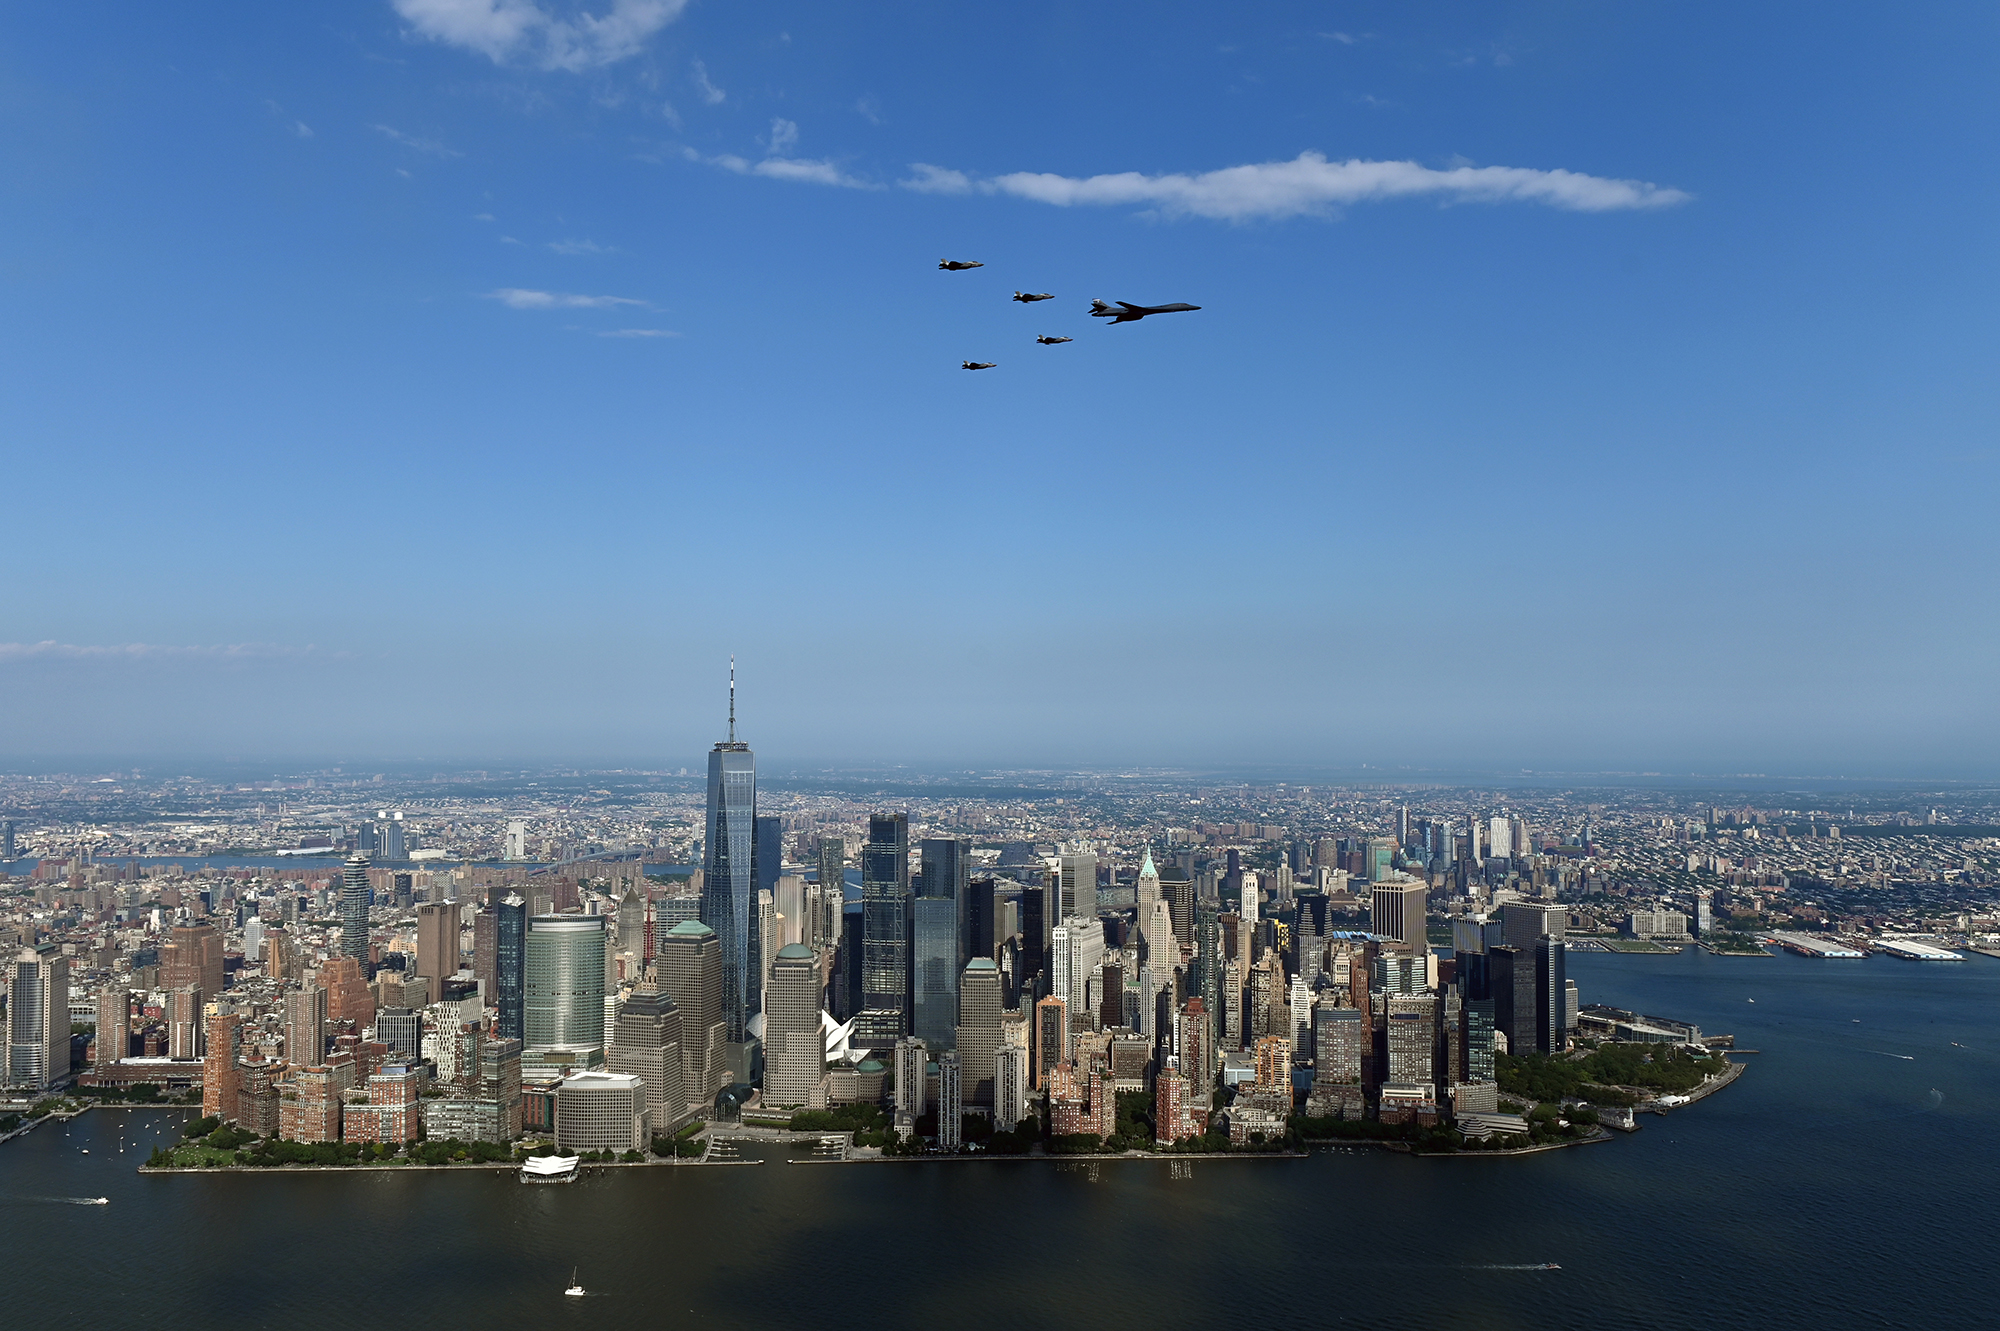 A B-1Lancer flies in formation with four F-35 Lightning II fighters over Manhattan as part of the